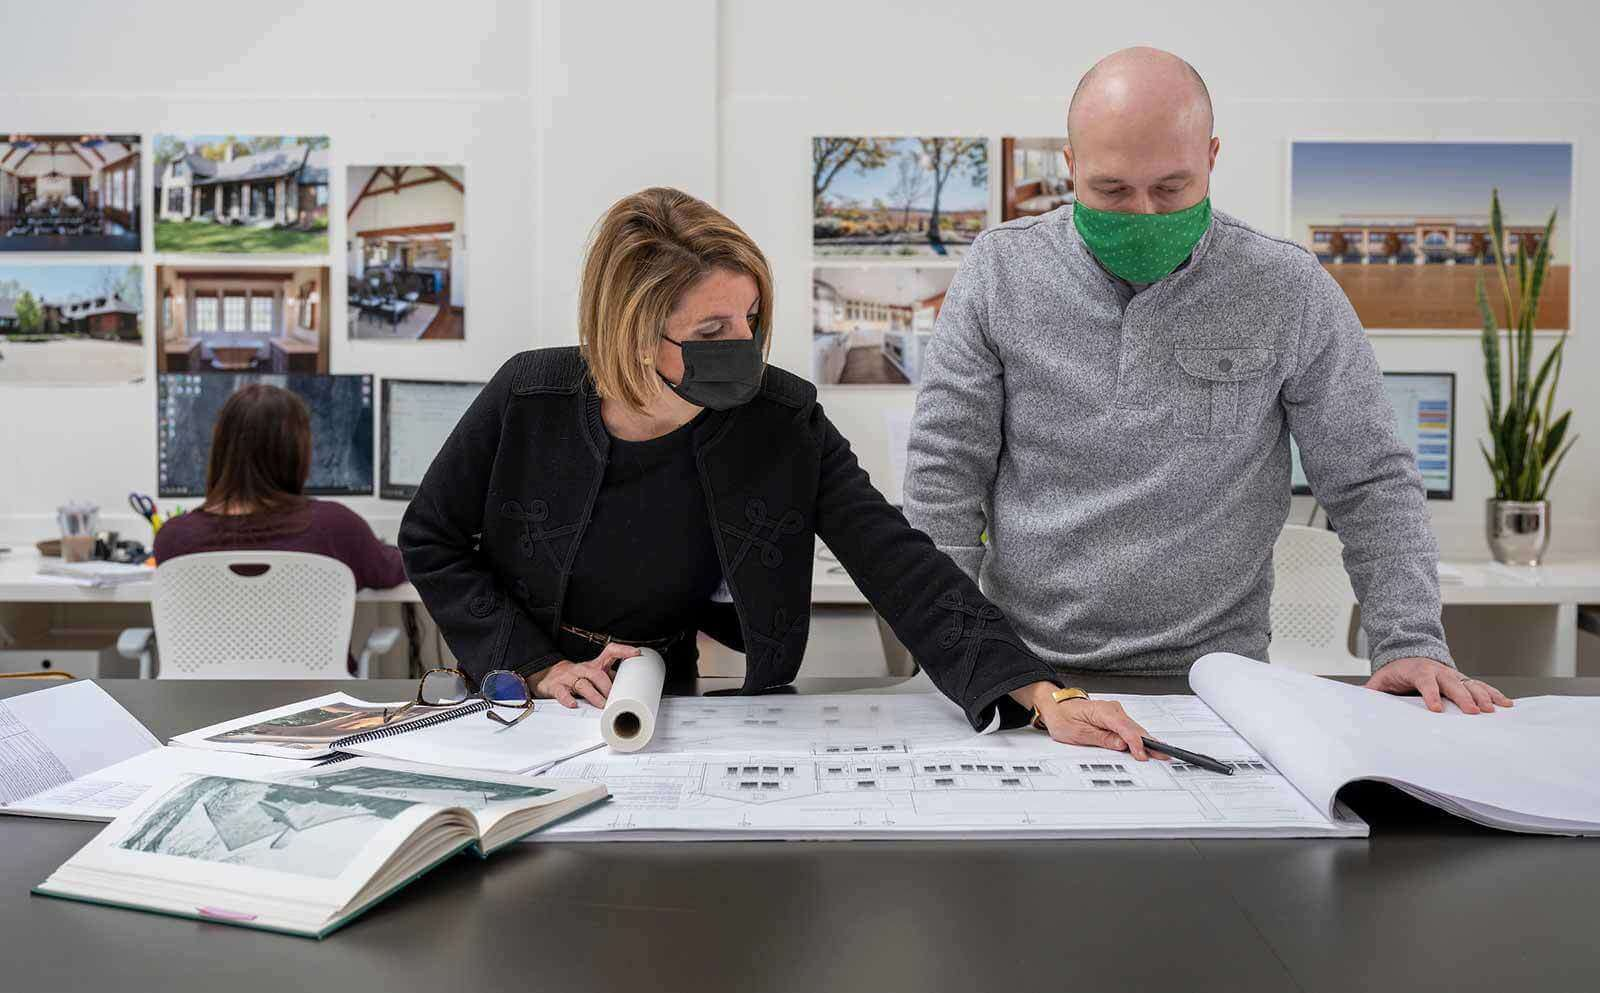 Two masked people stand at a desk looking at architecture sketches.